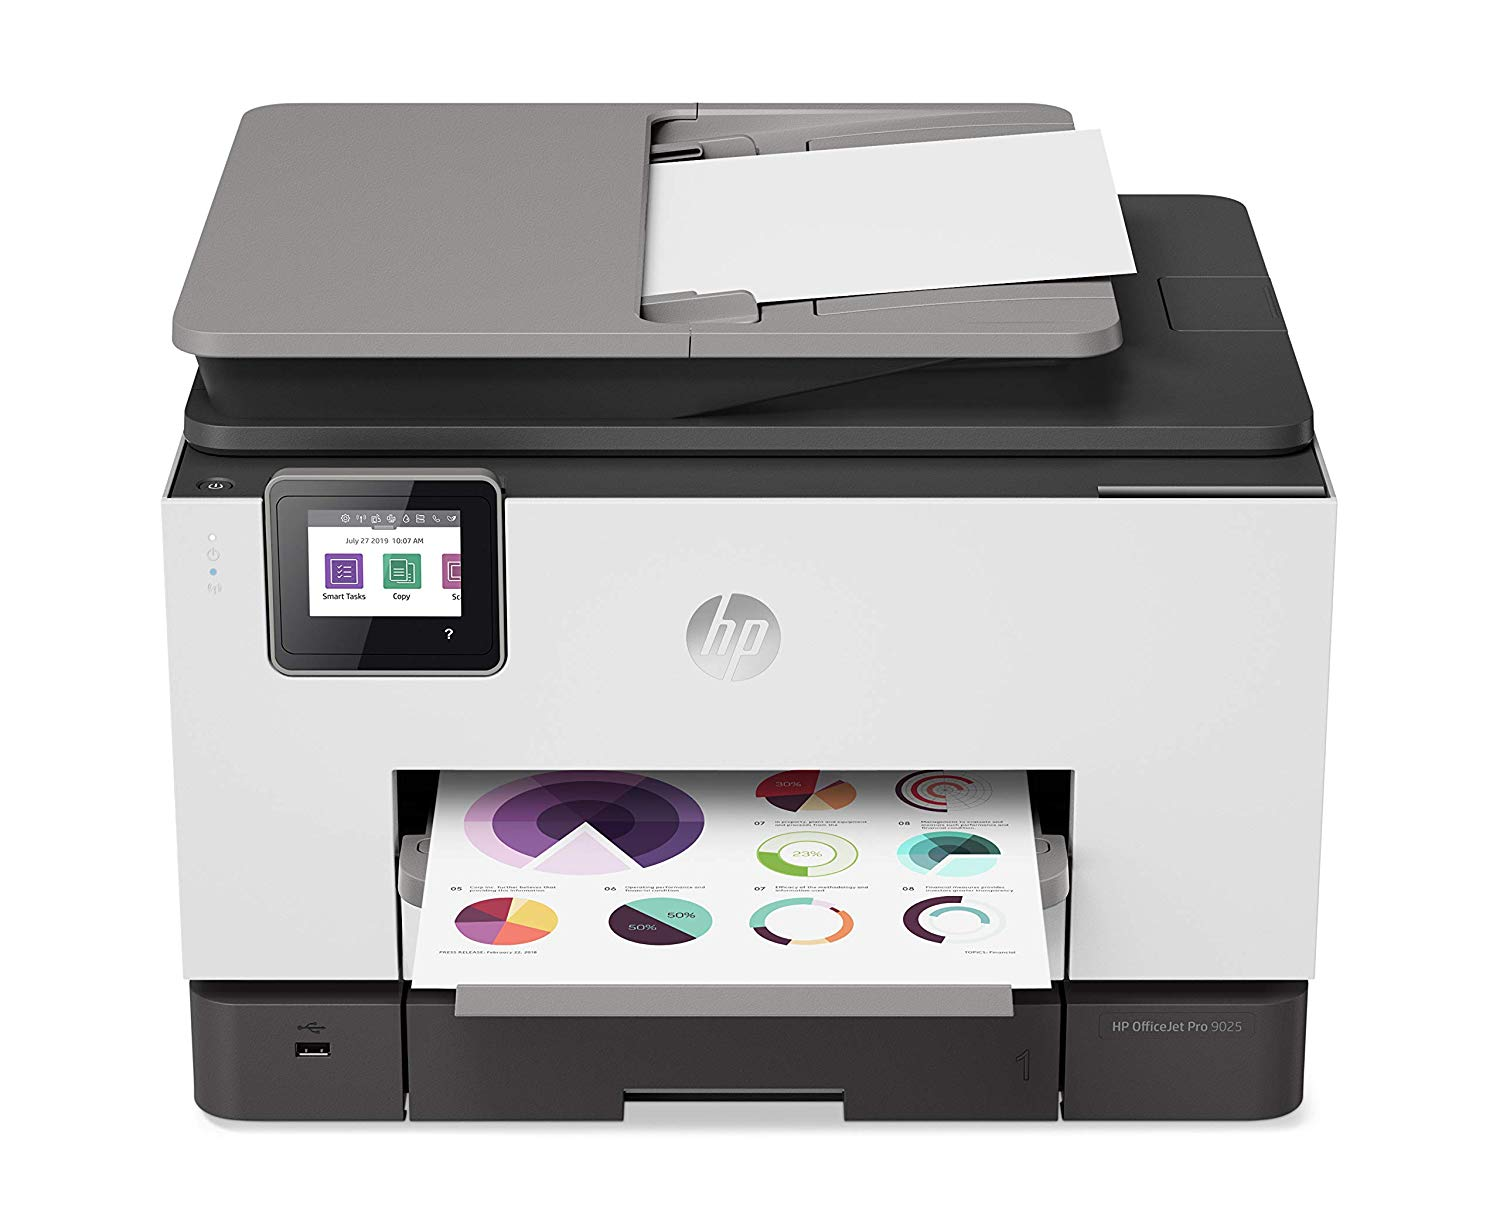 HP - The Best Photo Printers of 2019 - FilterGrade